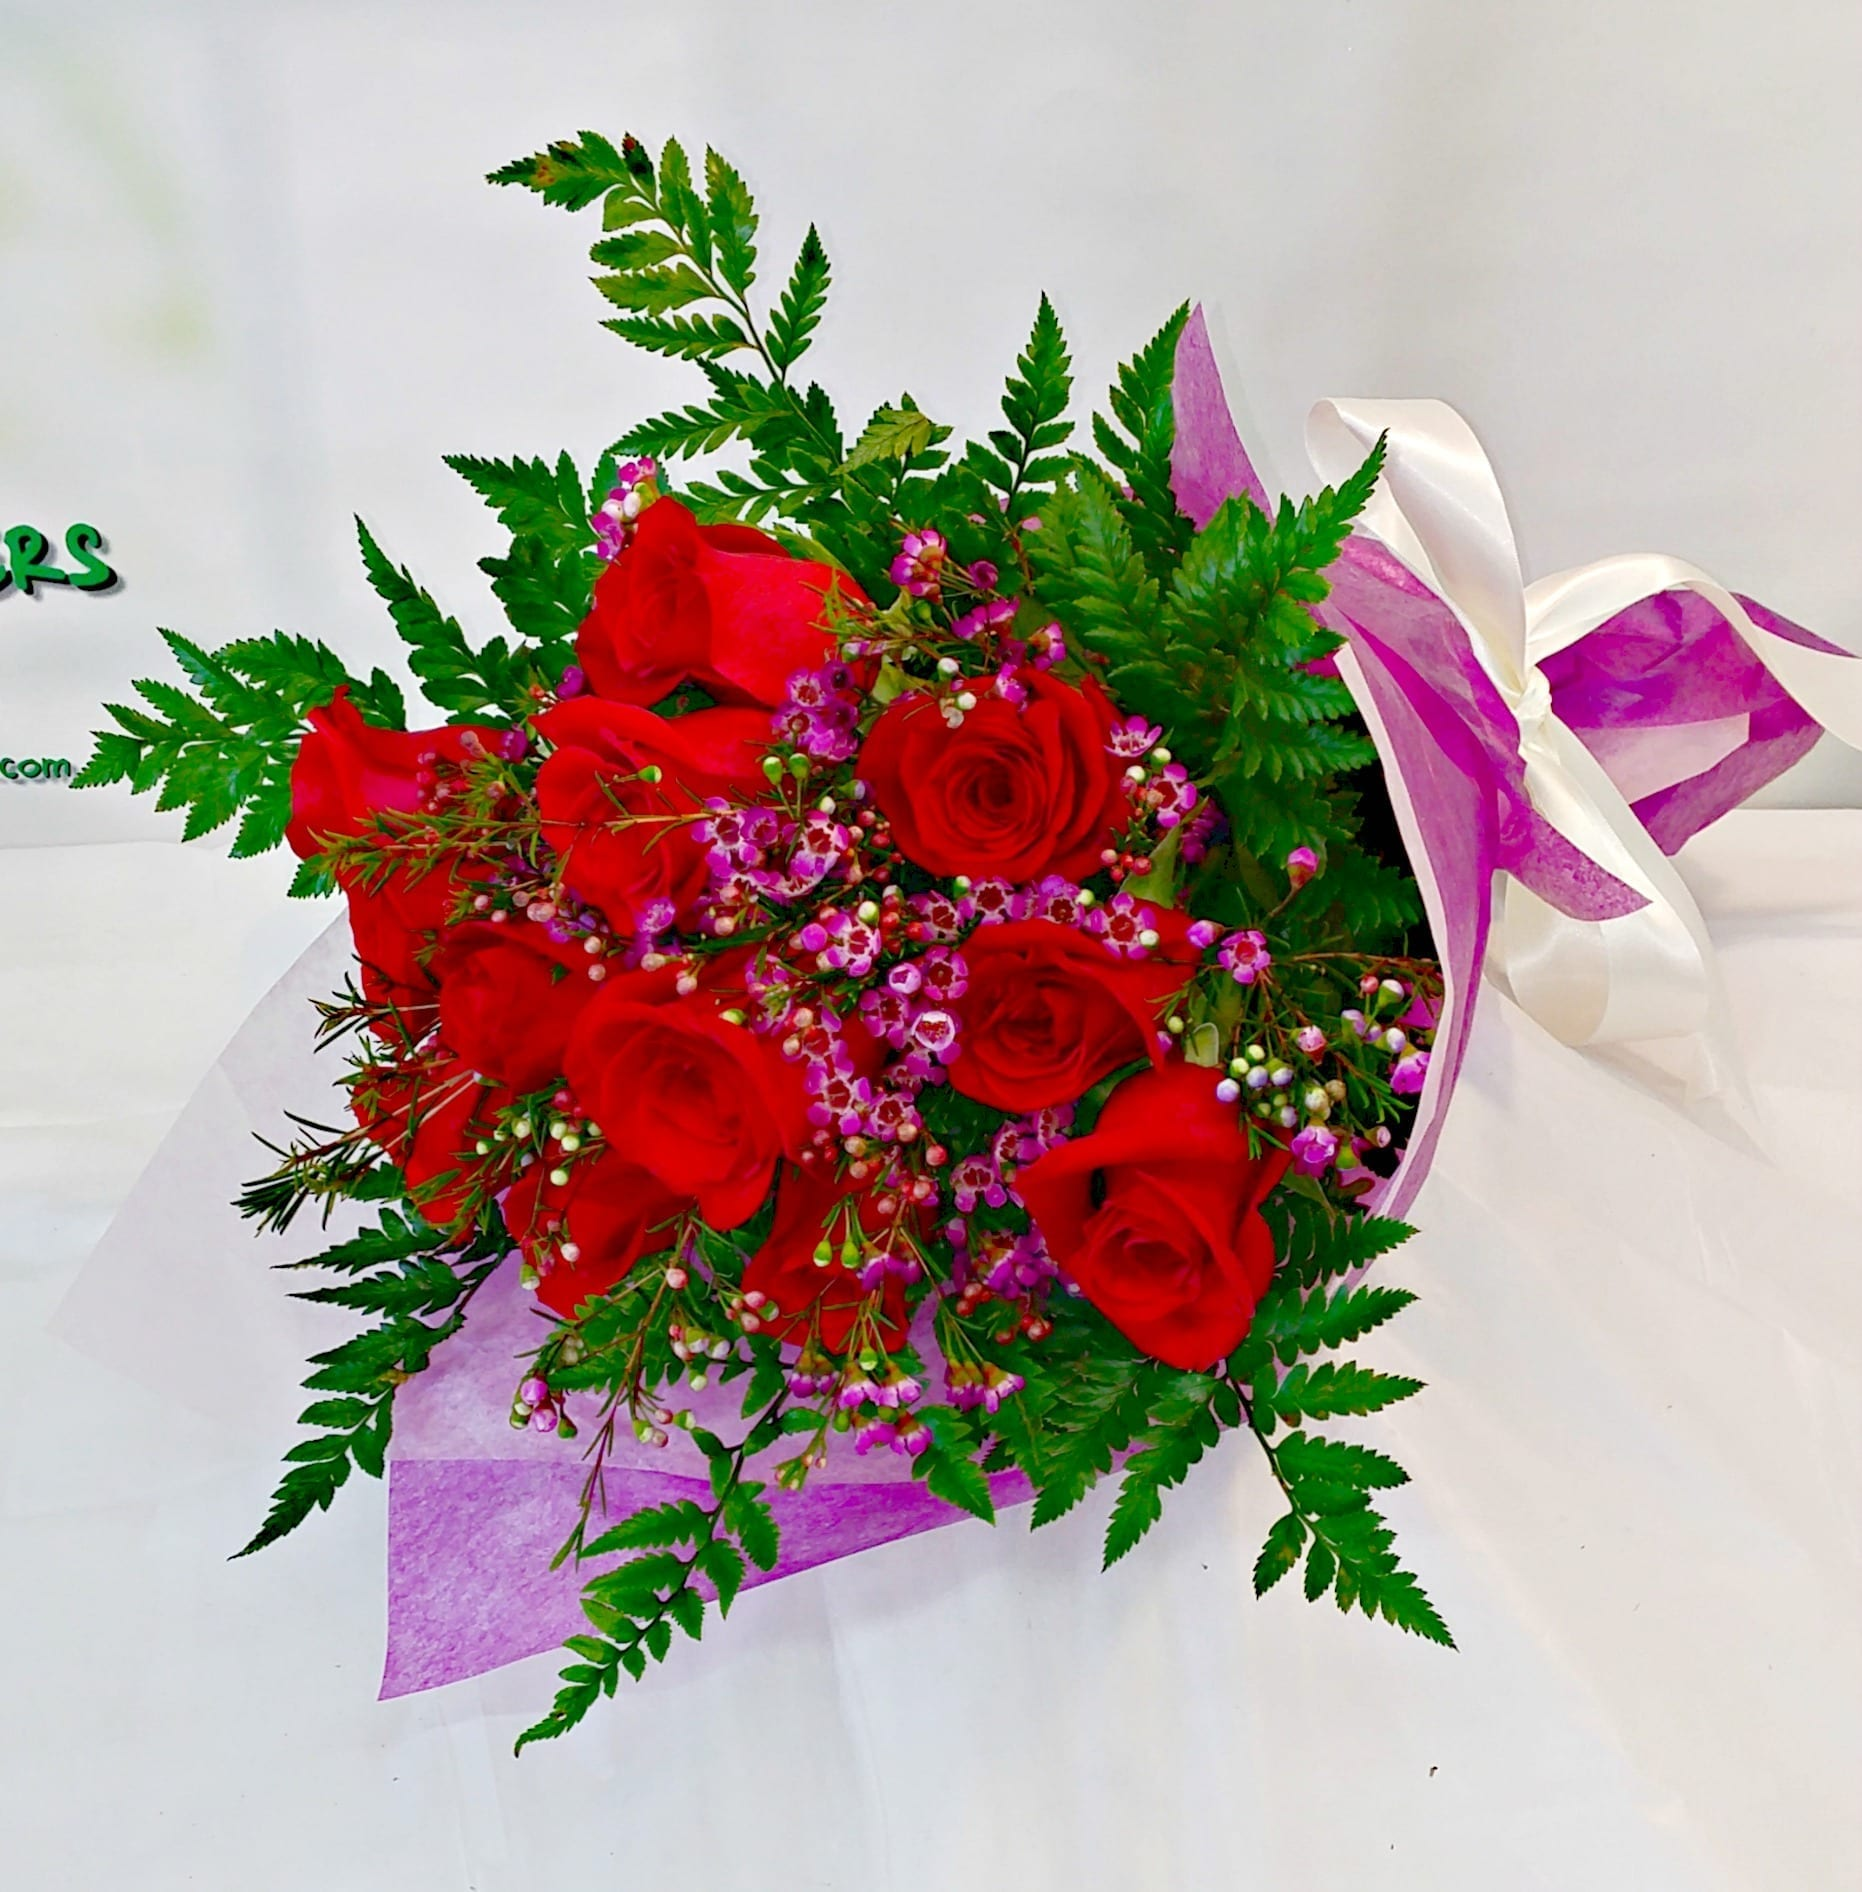 Dozen rose presentation bouquet fiesta flowers plants gifts presentation bouquet altavistaventures Choice Image